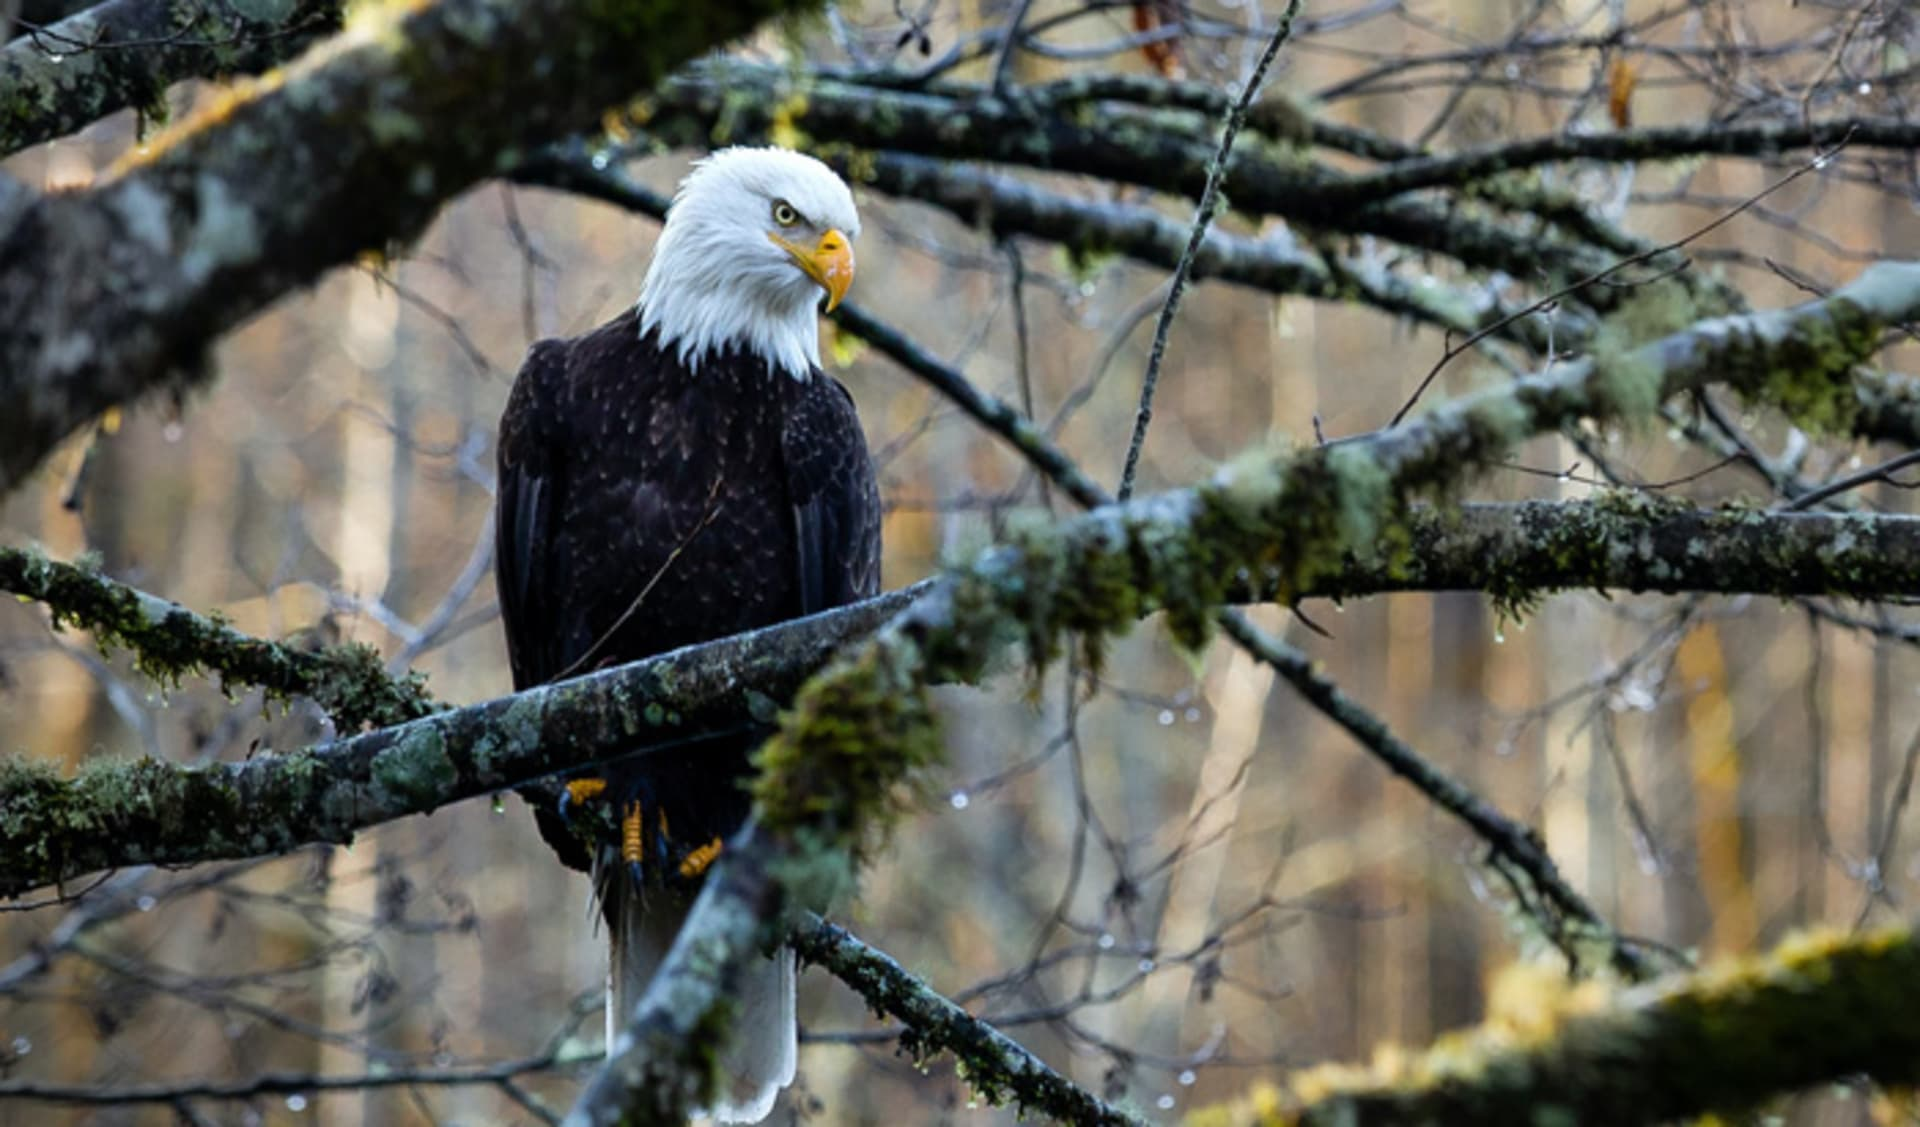 A Bald Eagle in a forest